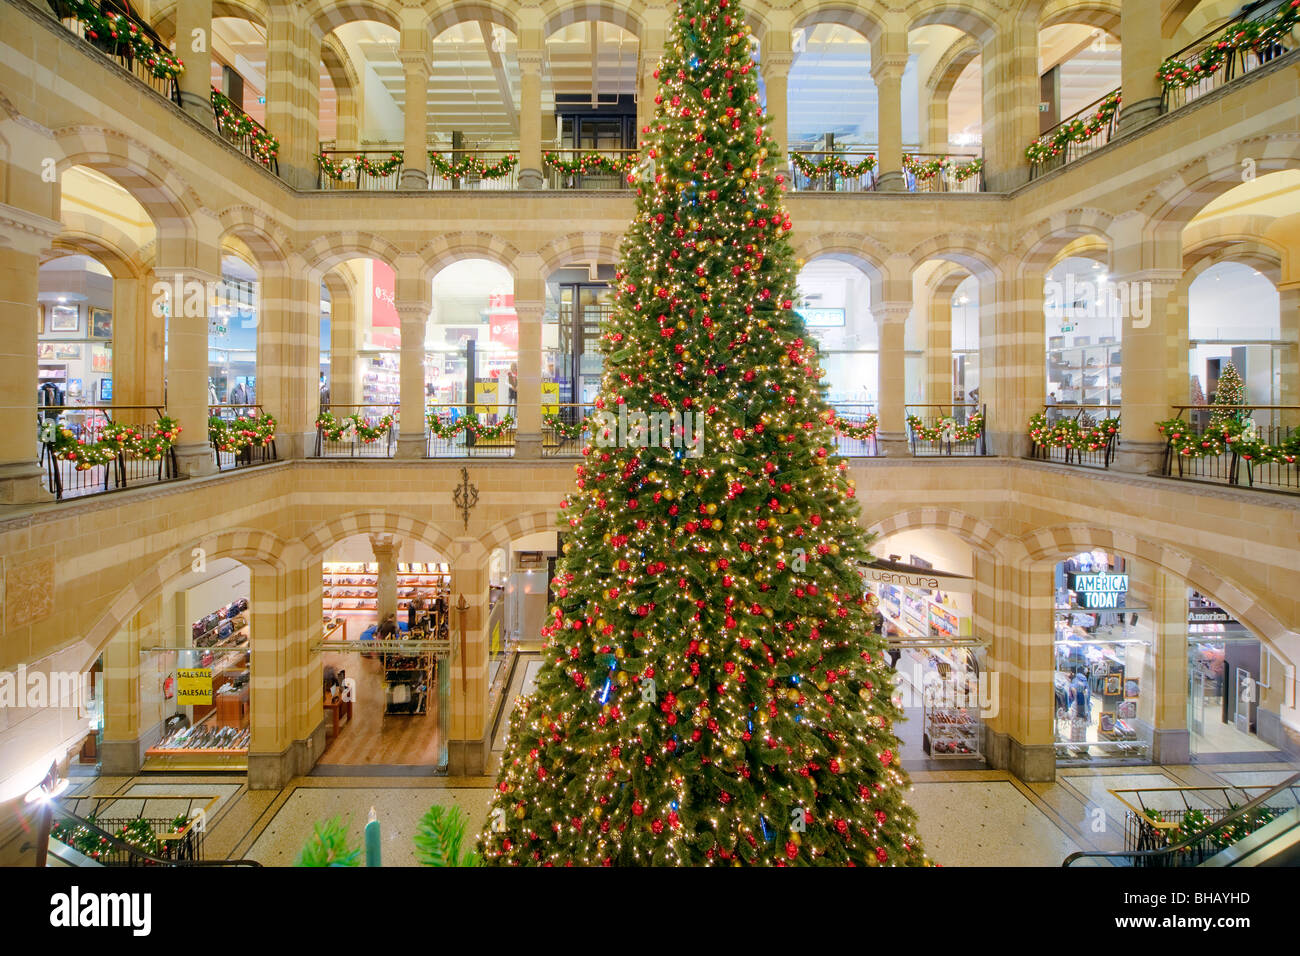 amsterdam indoor shopping mall magna plaza with christmas tree - Christmas Tree Shopping